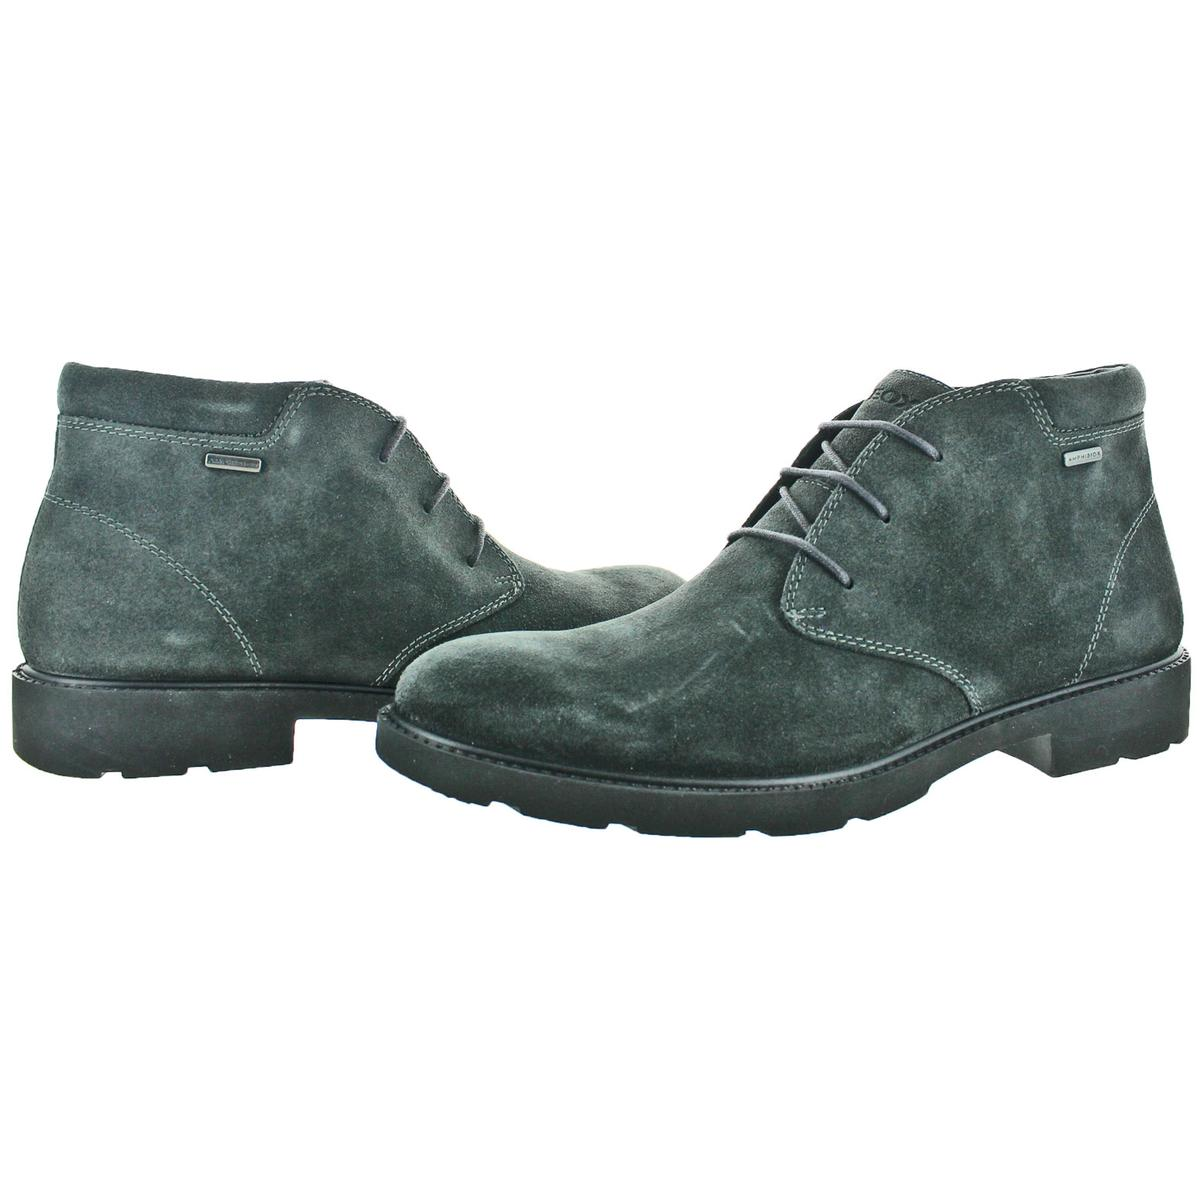 Geox-Rubbiano-ABX-Men-039-s-Waterproof-Suede-Ankle-Boots thumbnail 5